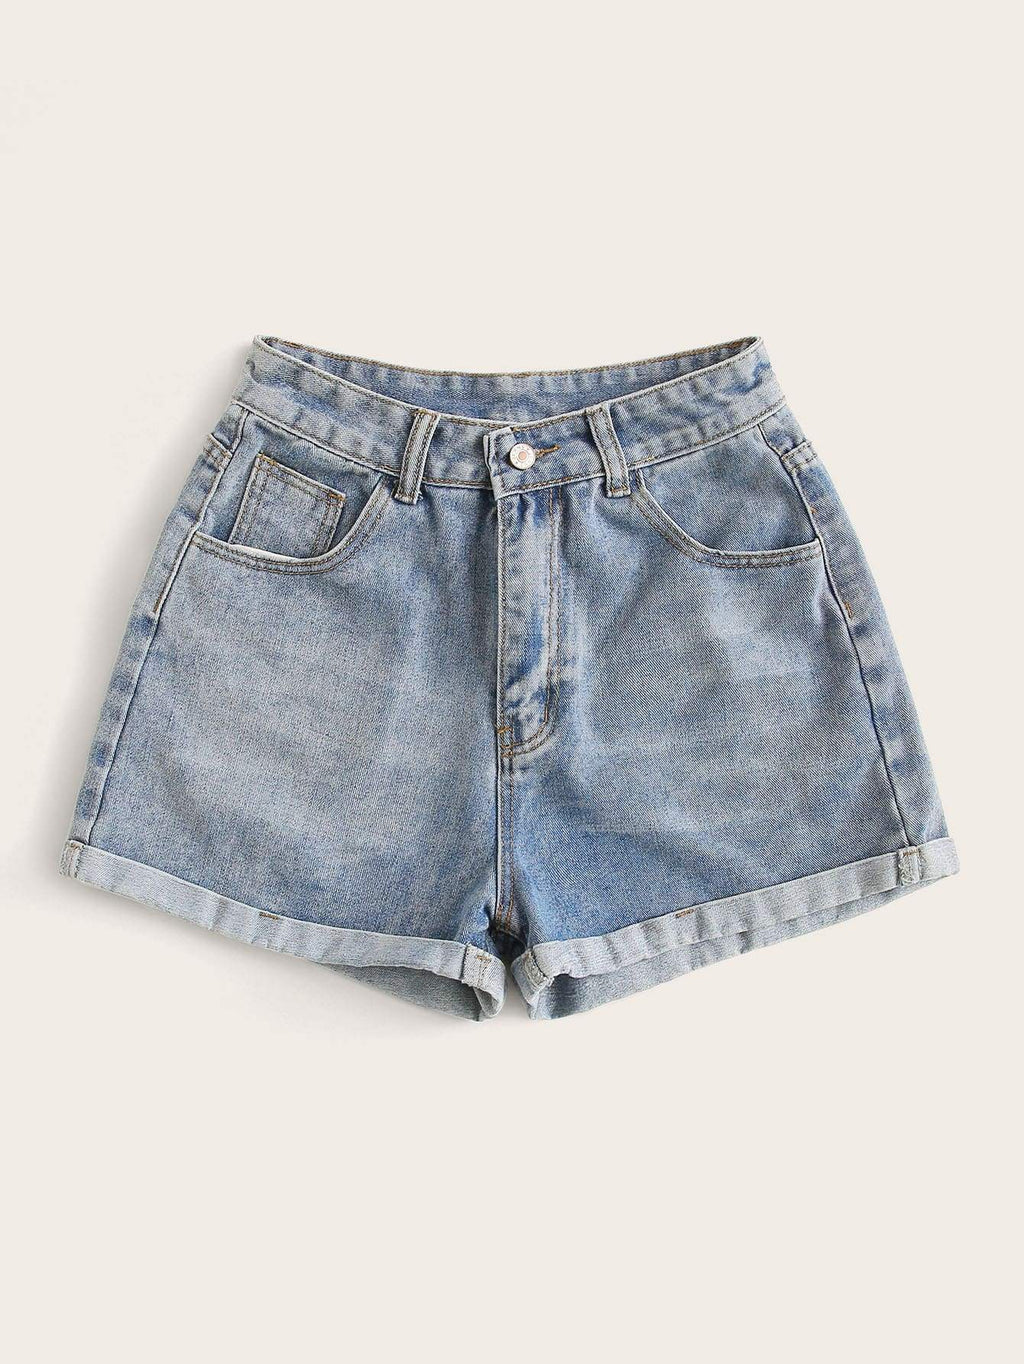 Rolled High-Rise Denim Shorts - INS | Online Fashion Free Shipping Clothing, Dresses, Tops, Shoes